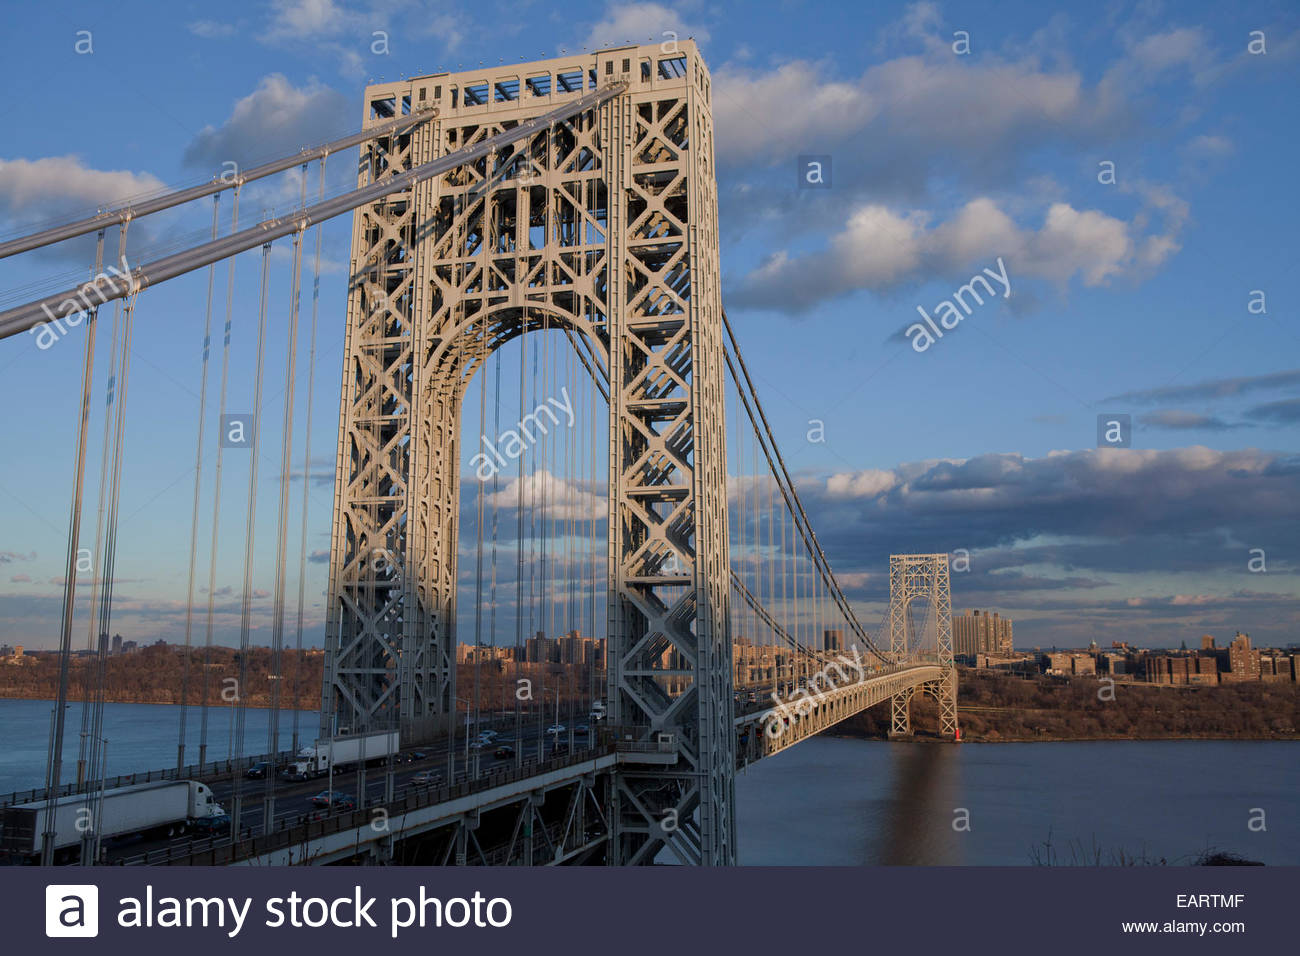 View from Hiking path near GW Bridge in Fort Lee NJ - Stock Image